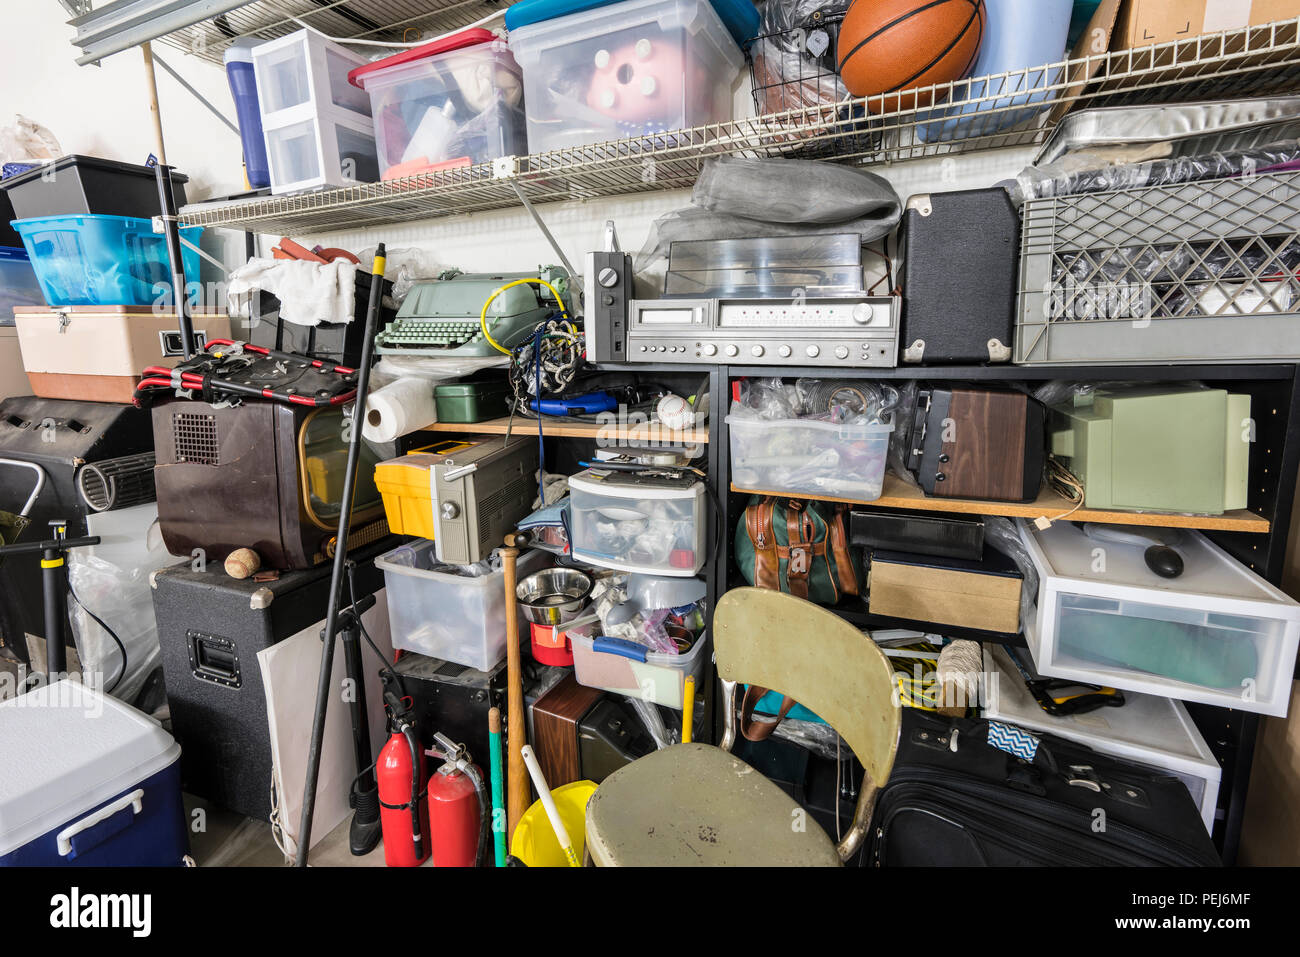 Full shelves of vintage electronics, boxes and sports equipment in typical suburban garage. - Stock Image